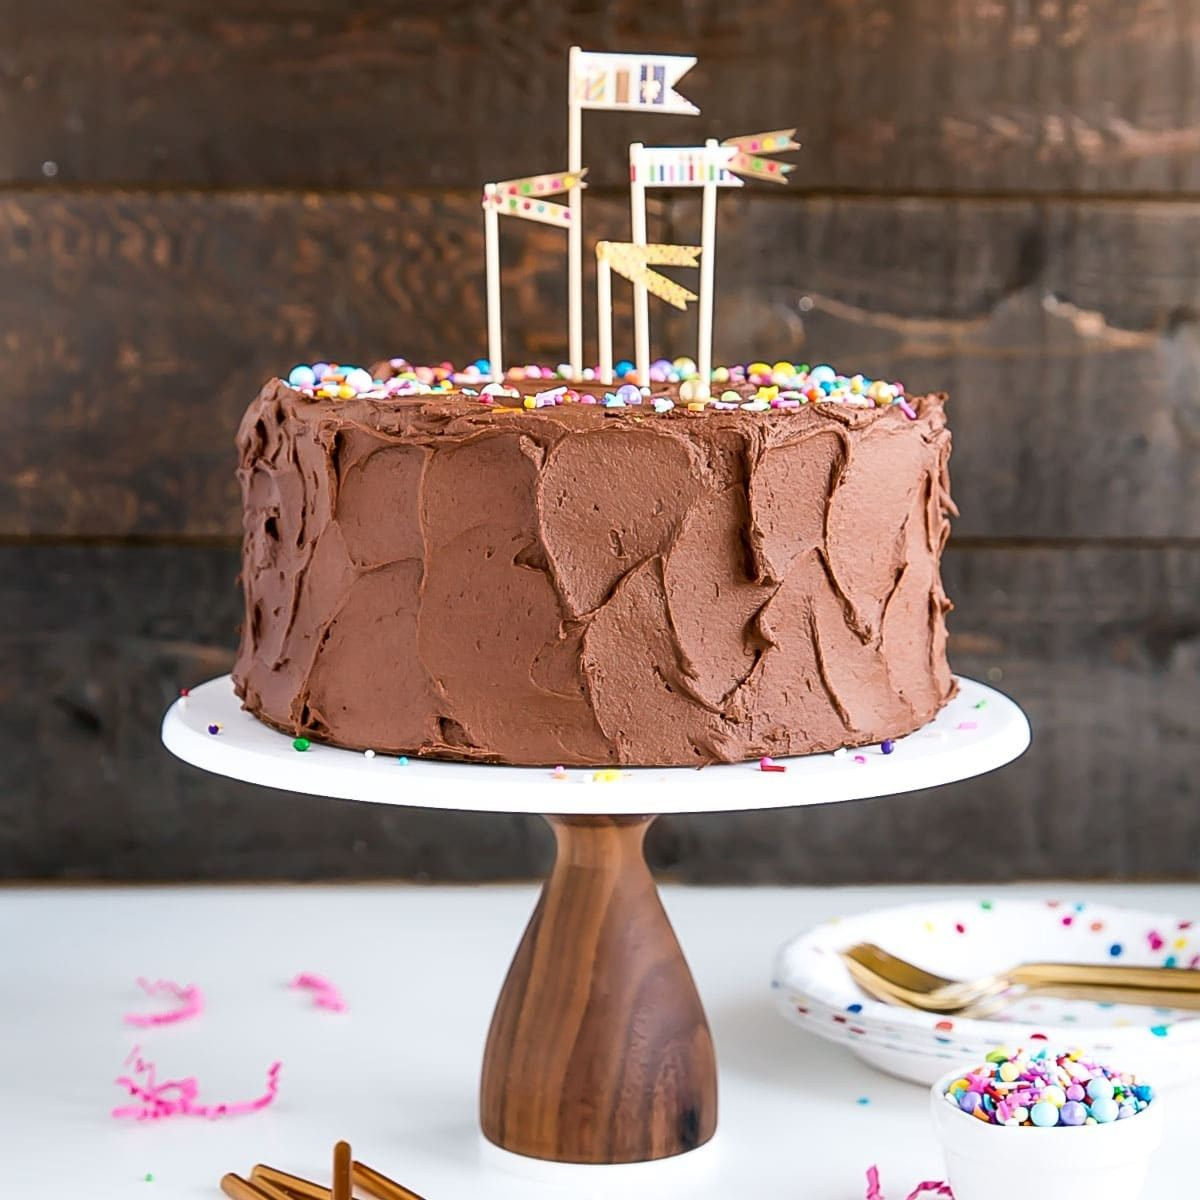 Astonishing 21 Beautiful Picture Of Birthday Cake Recipes For Adults Best Funny Birthday Cards Online Alyptdamsfinfo